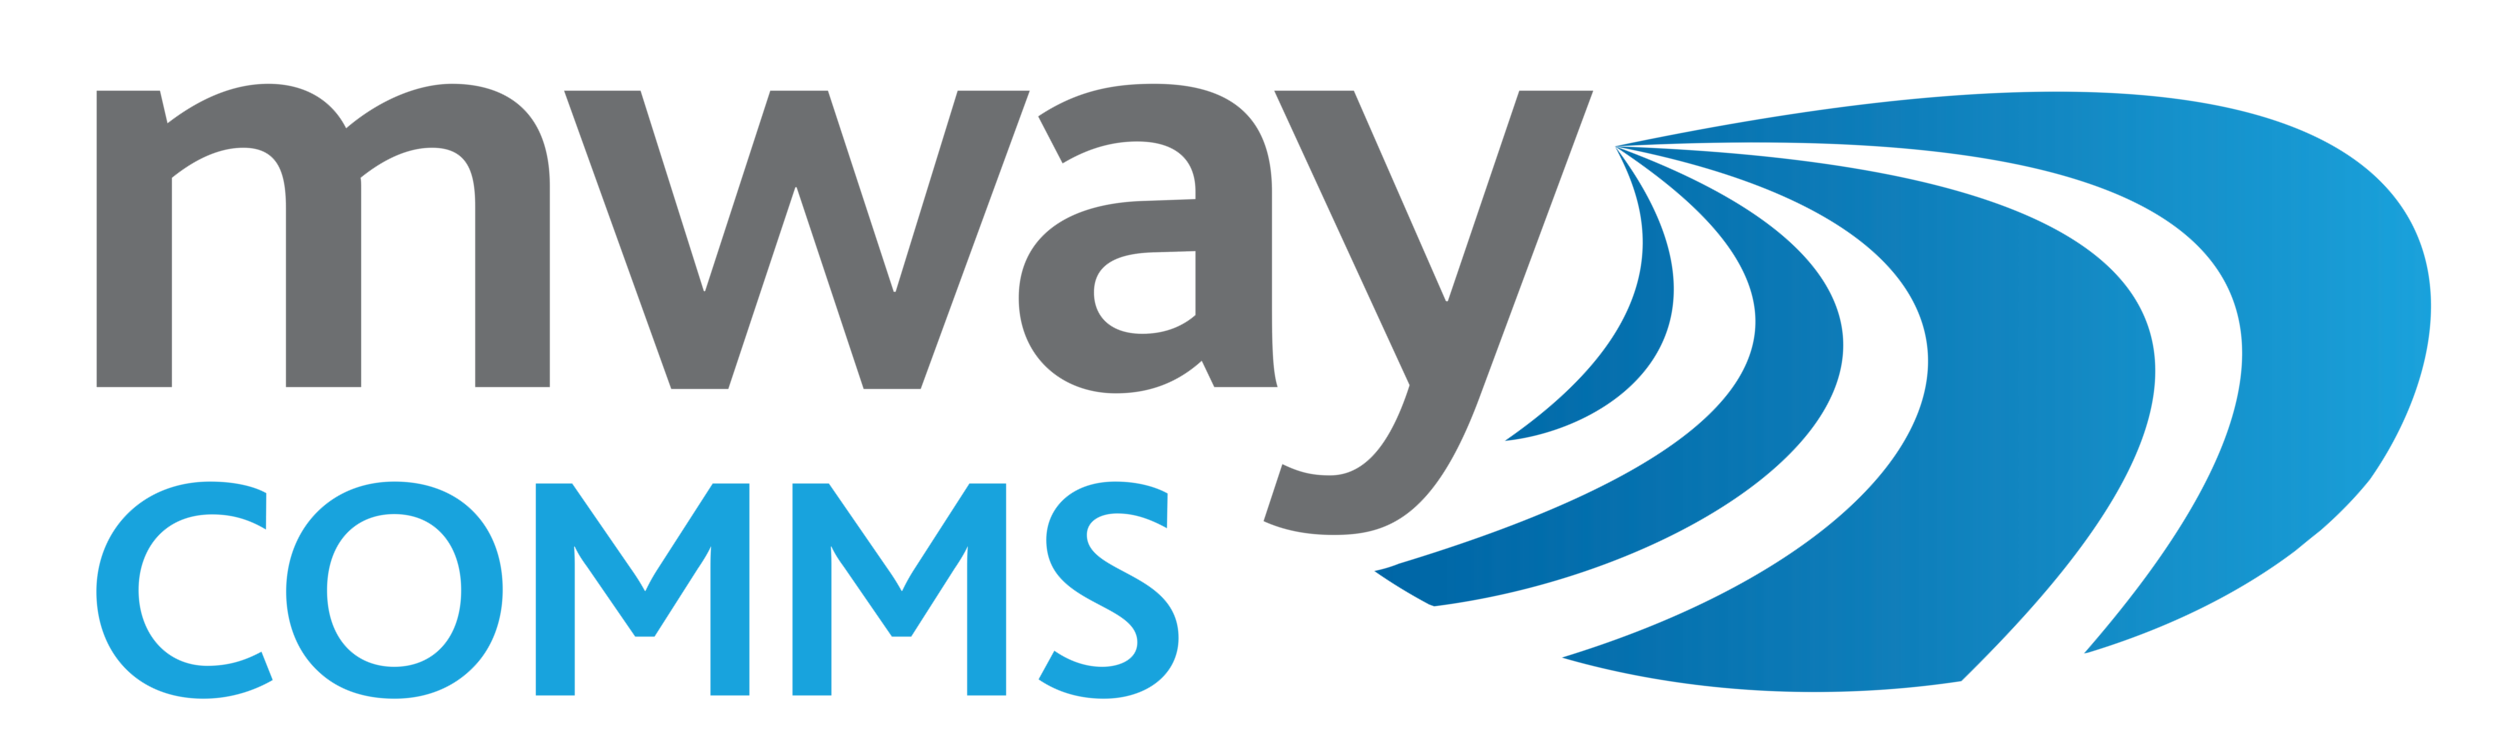 MWAY-COMMS-Logo.png